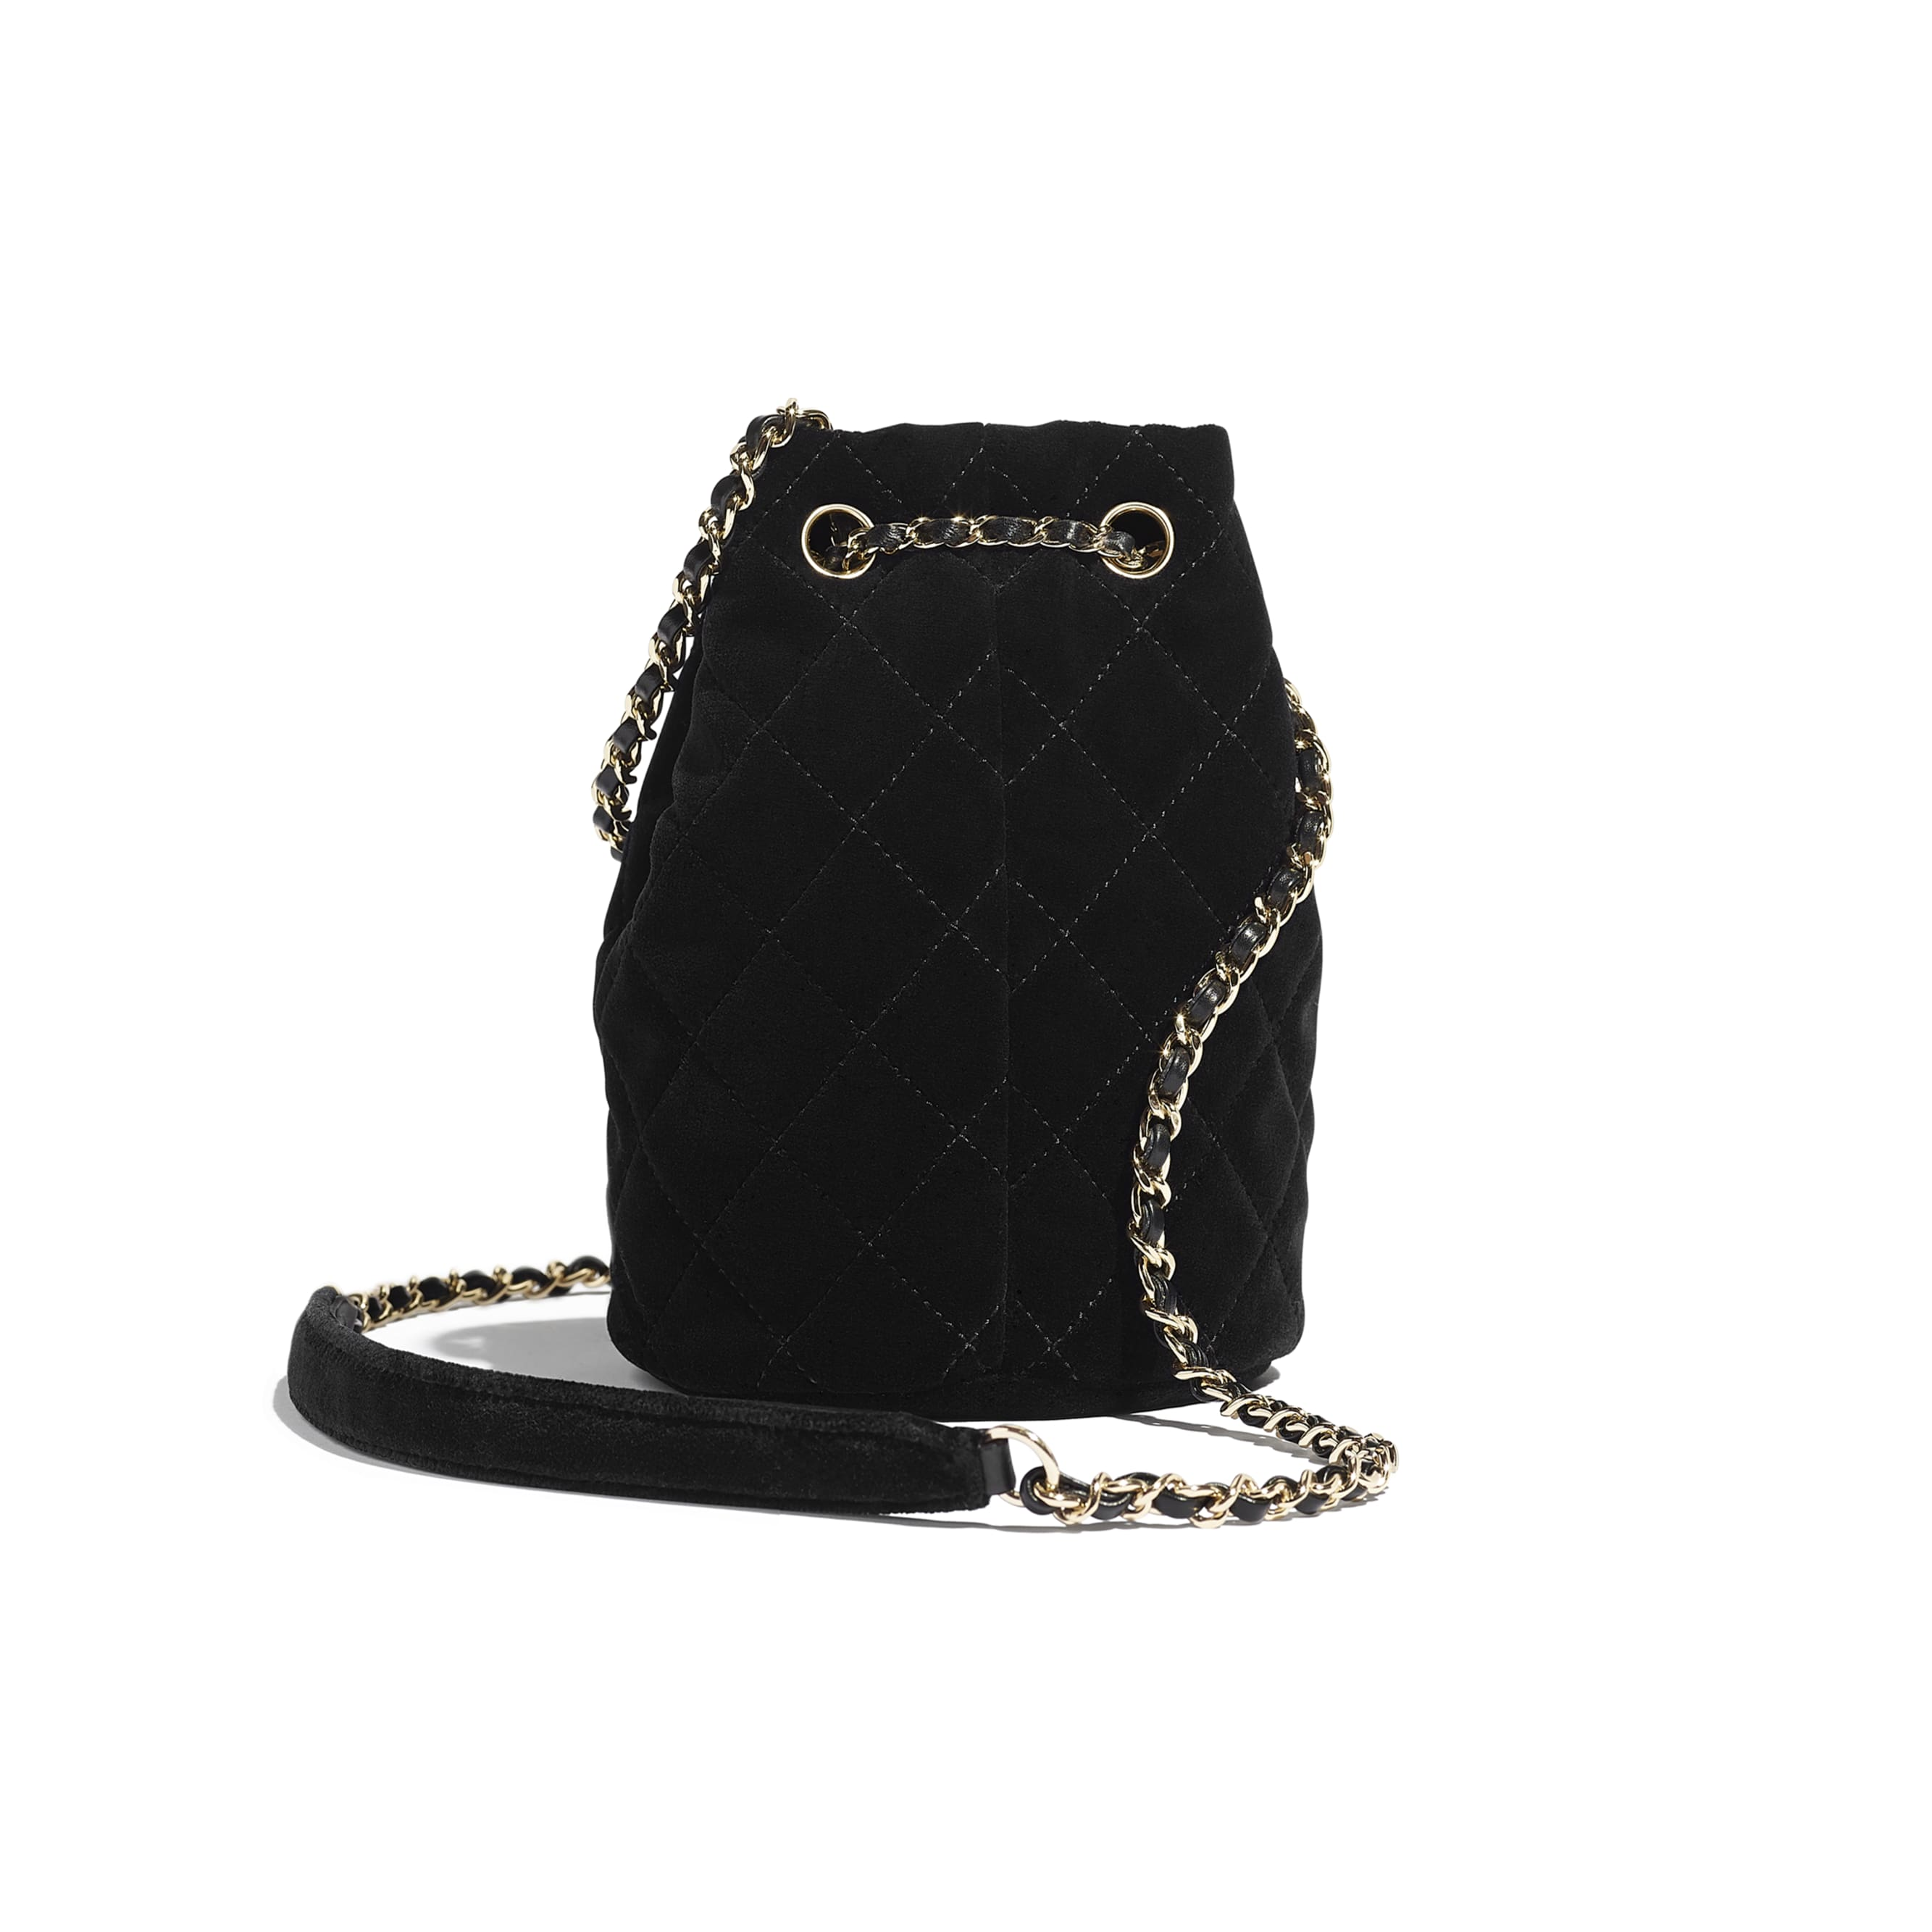 Drawstring Bag - Black - Velvet, Diamanté & Gold-Tone Metal - CHANEL - Alternative view - see standard sized version